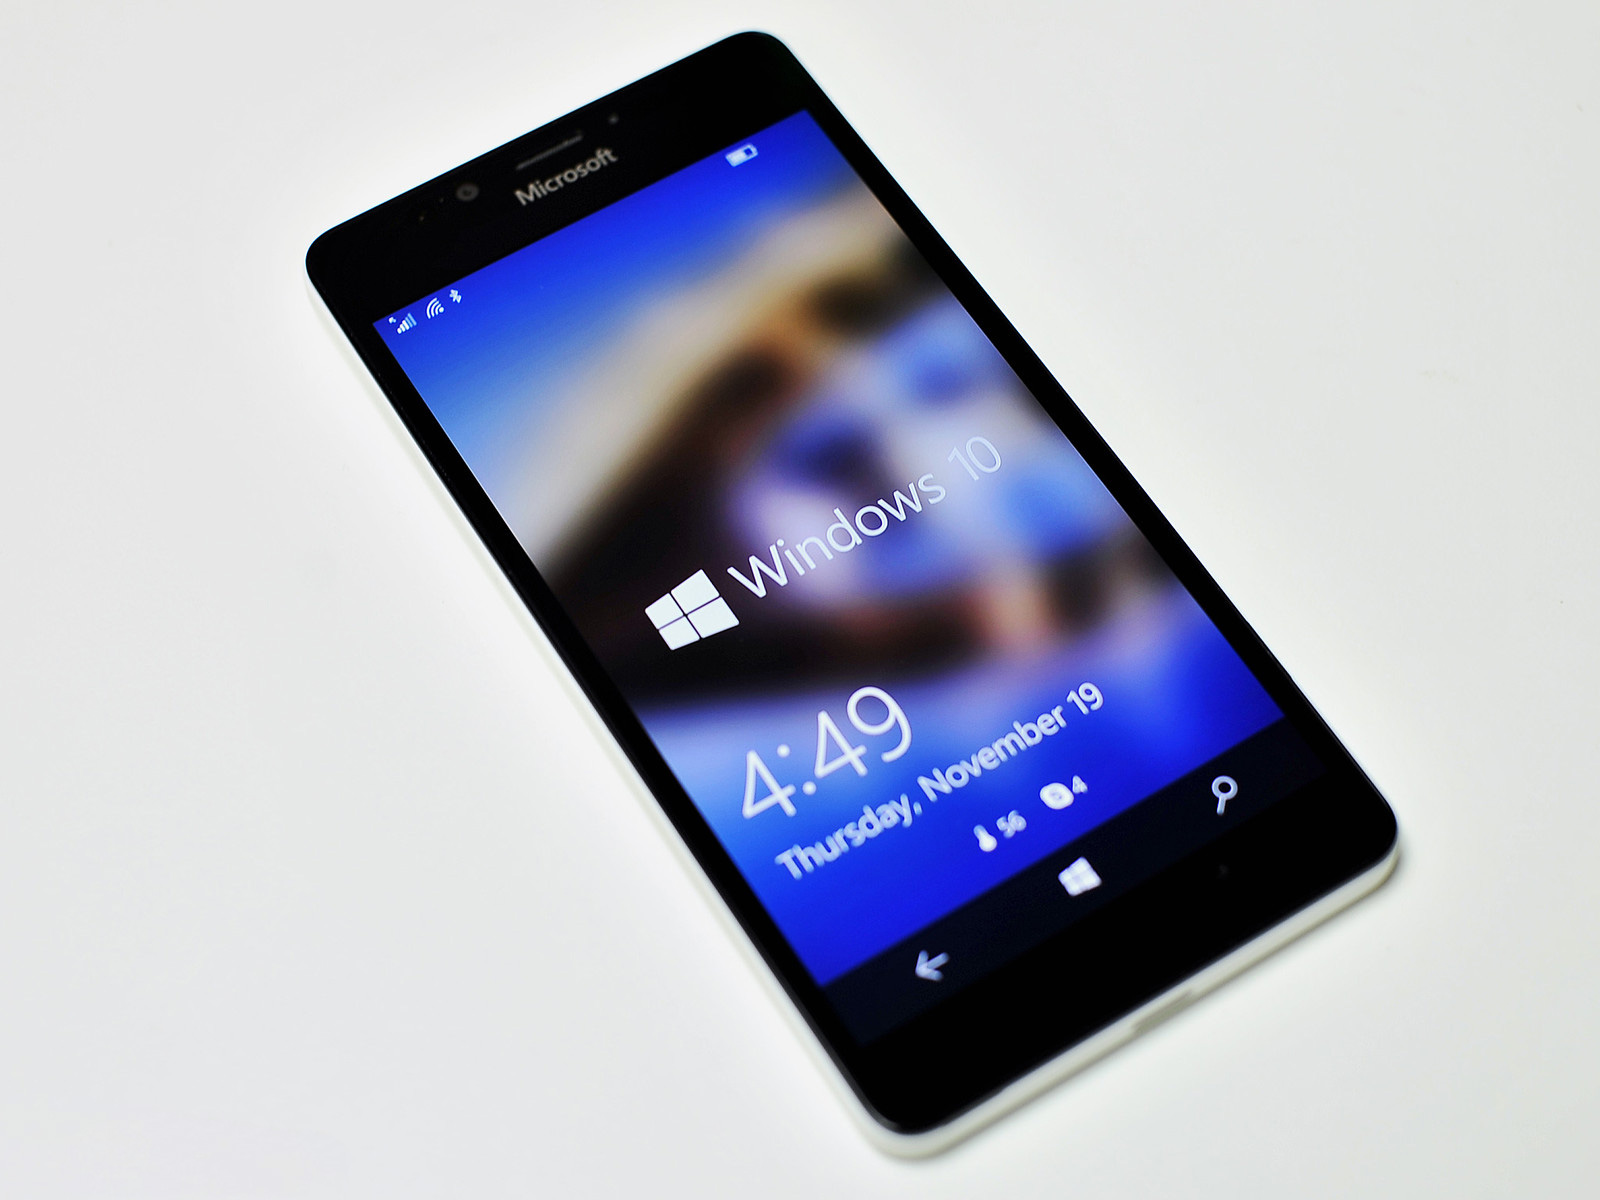 Lumia 950 Windows Phone